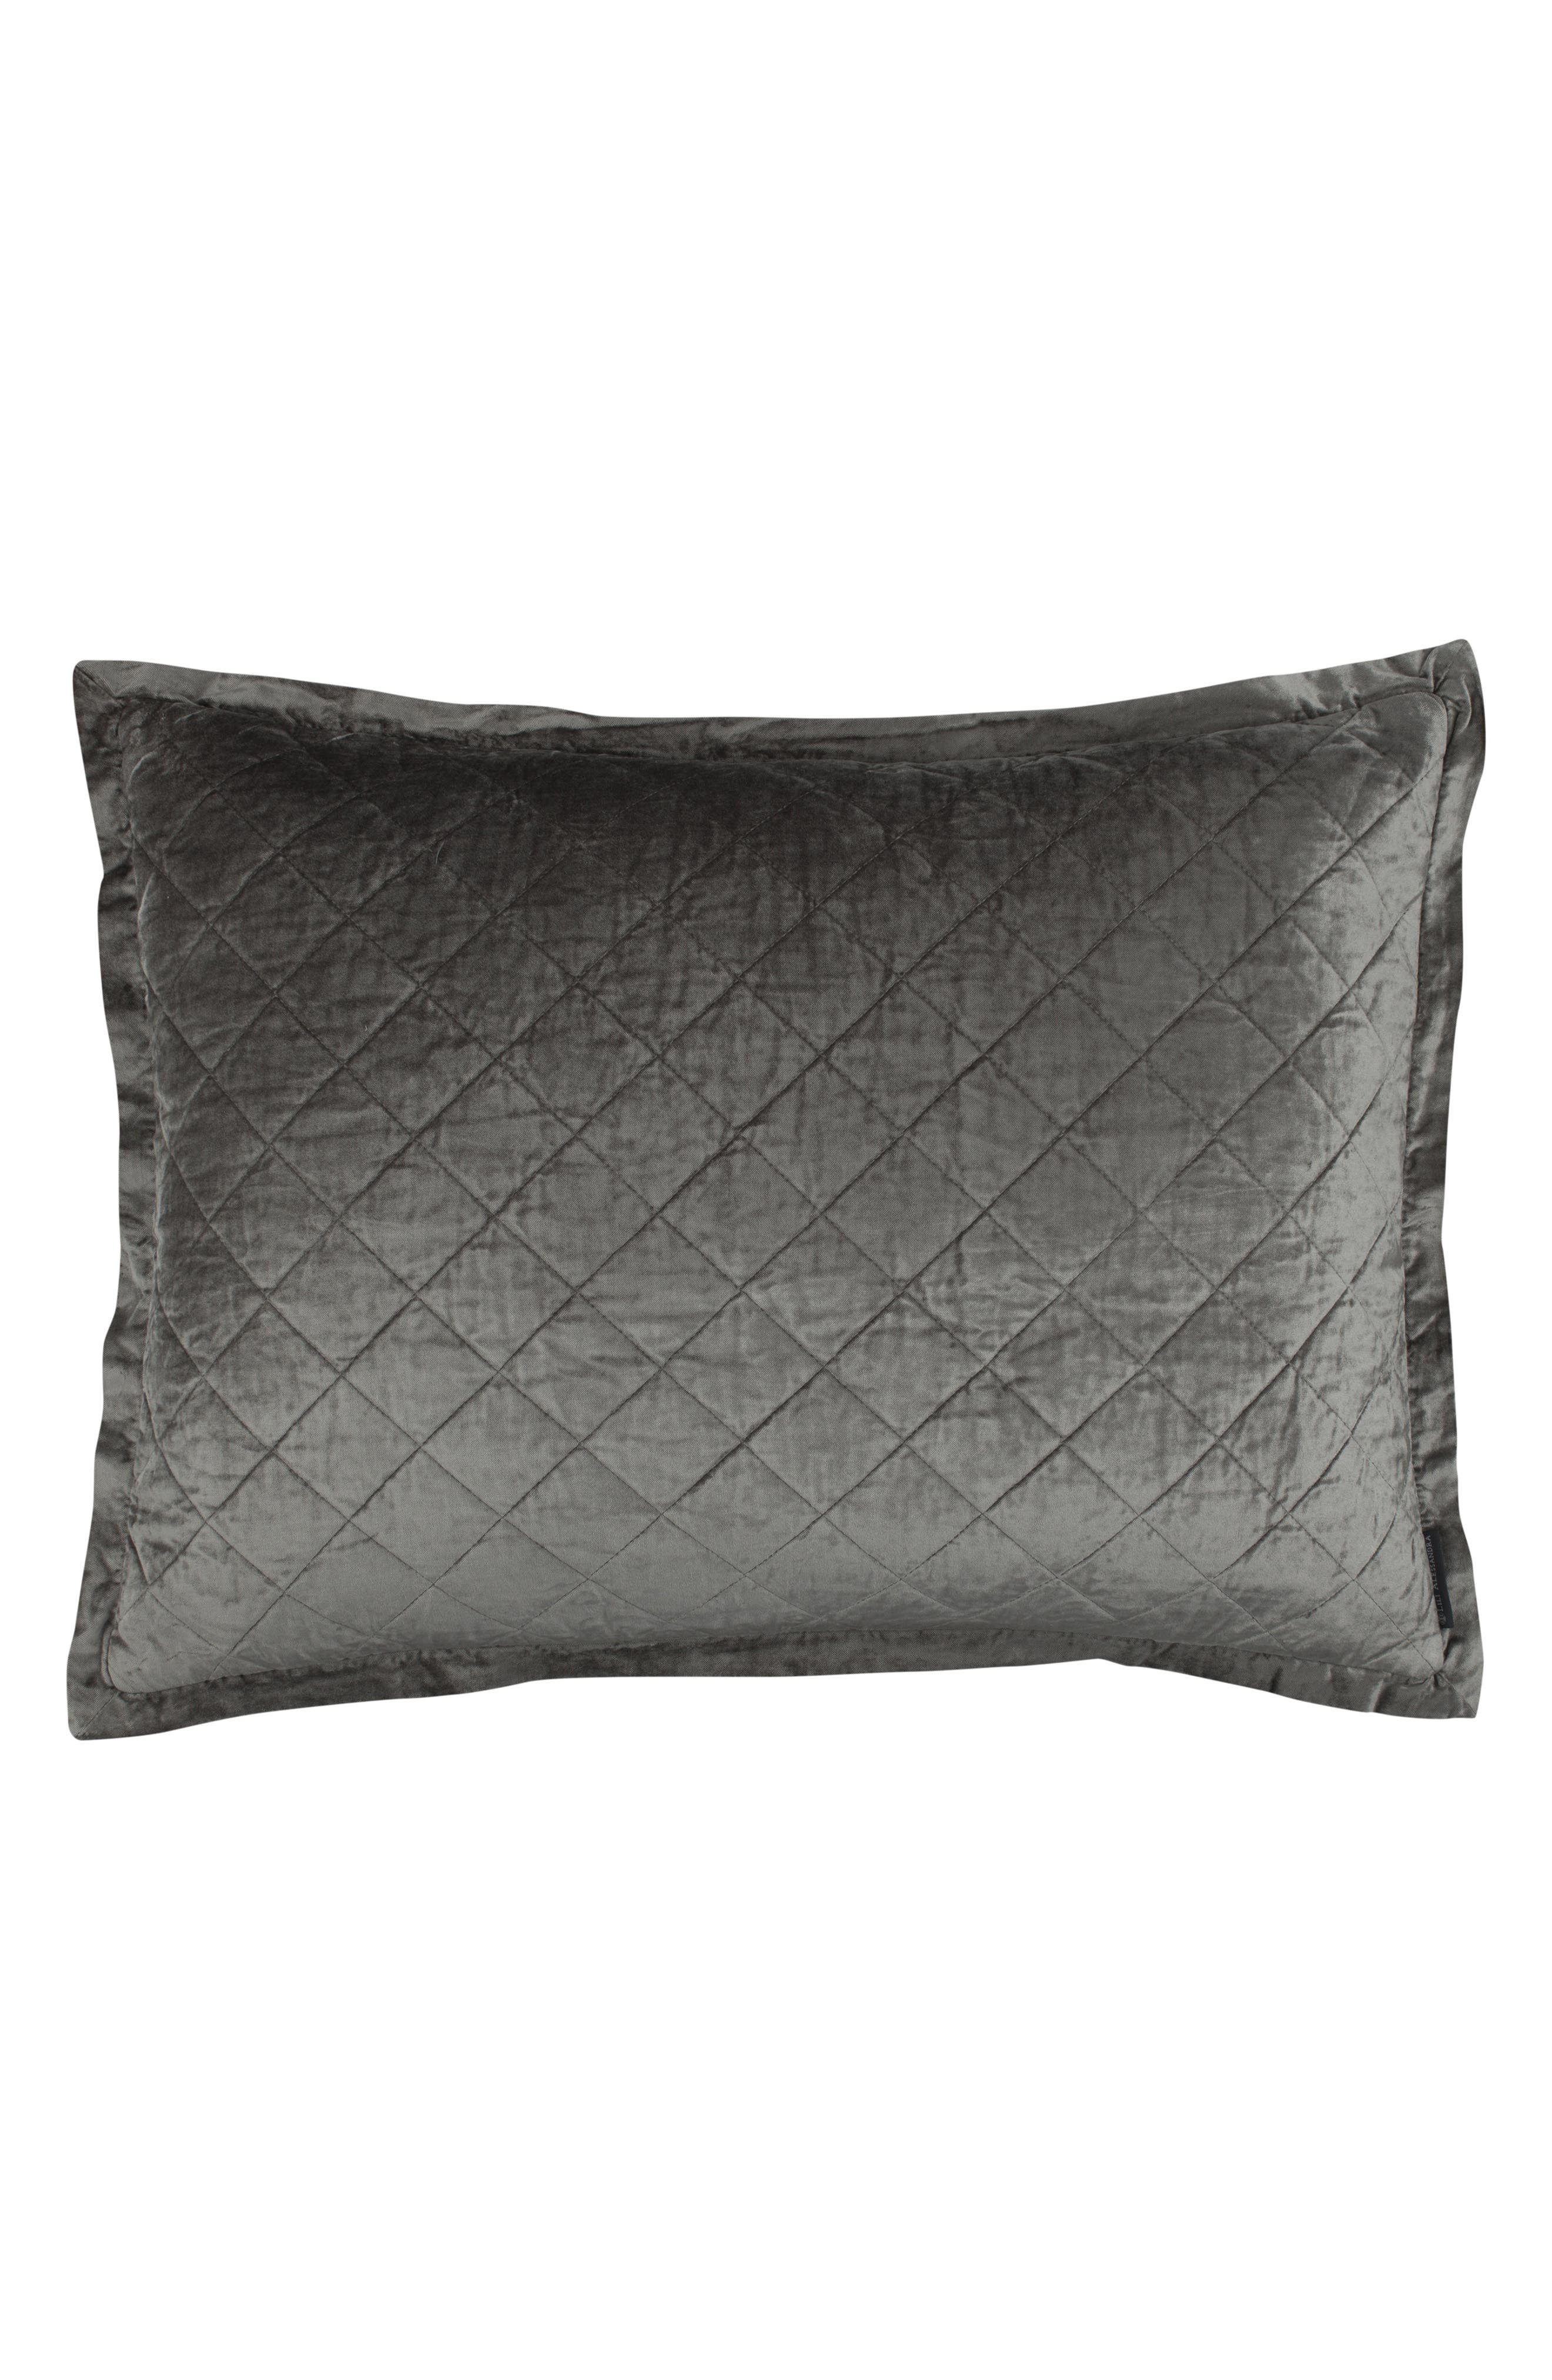 Chloe Quilted Sham,                         Main,                         color, 020